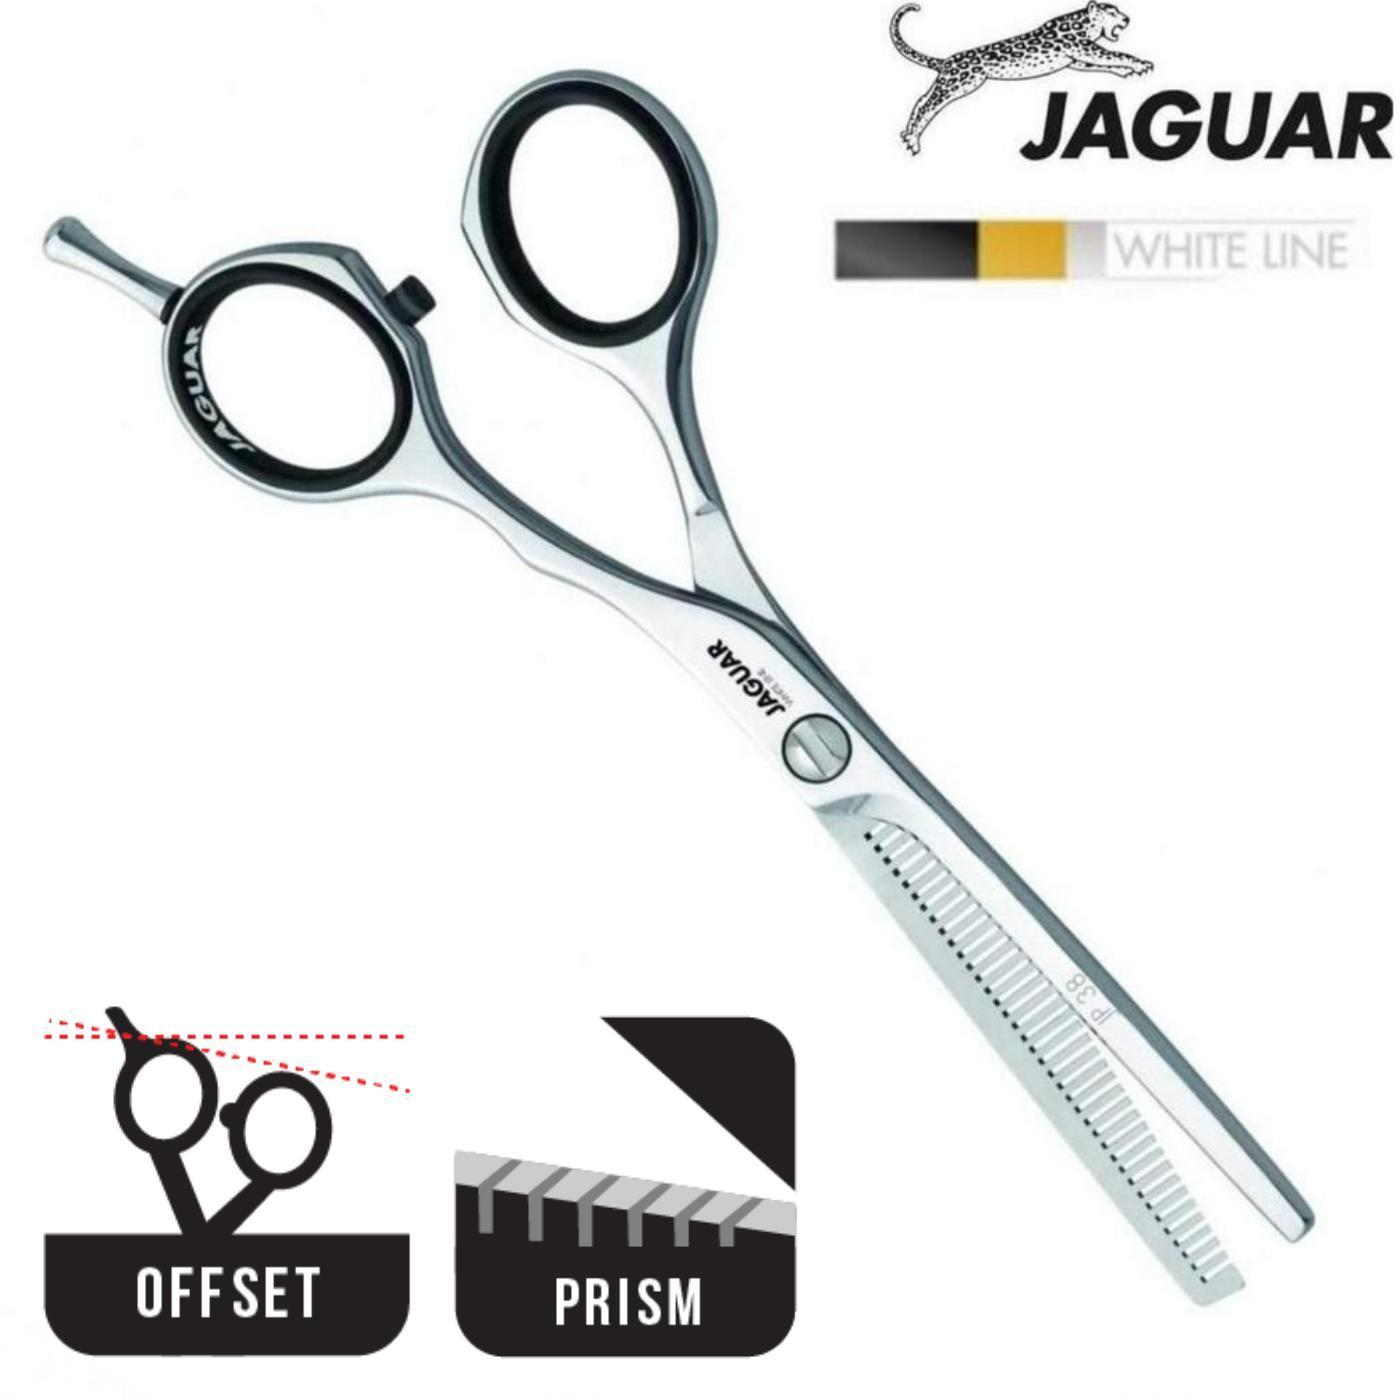 Jaguar White Line JP 38 LEFTY Thinning Scissors - Japan Scissors